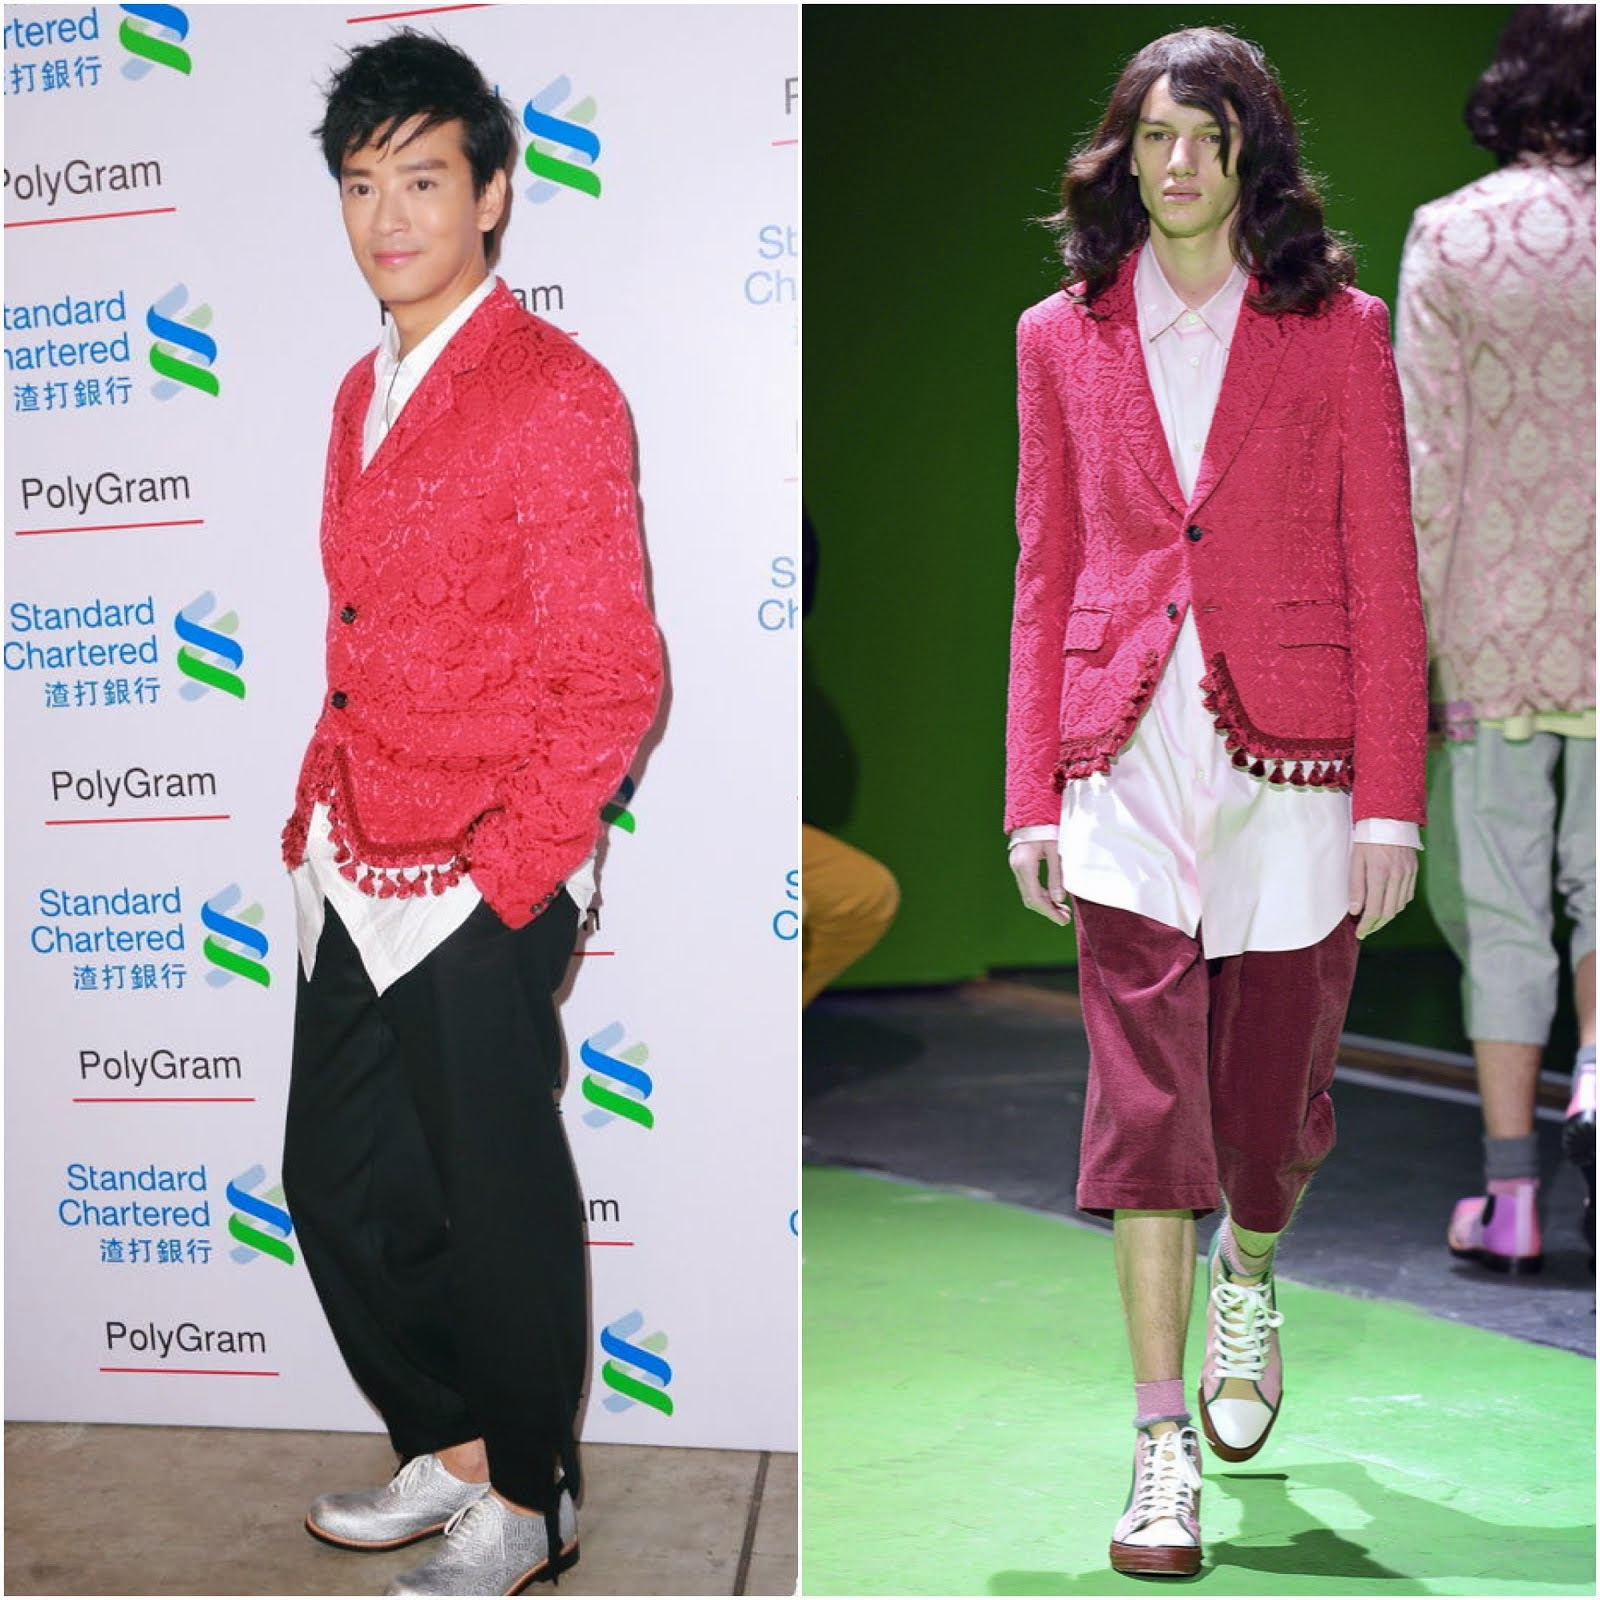 00O00 Menswear Blog: Daniel Chan [陈晓东] in Comme des Garçons Red floral jacquard tailored evening jacket with tasselled hemline Fall Winter 2013 - Polygram All Stars Concert August 2013 宝丽金歌手演唱会